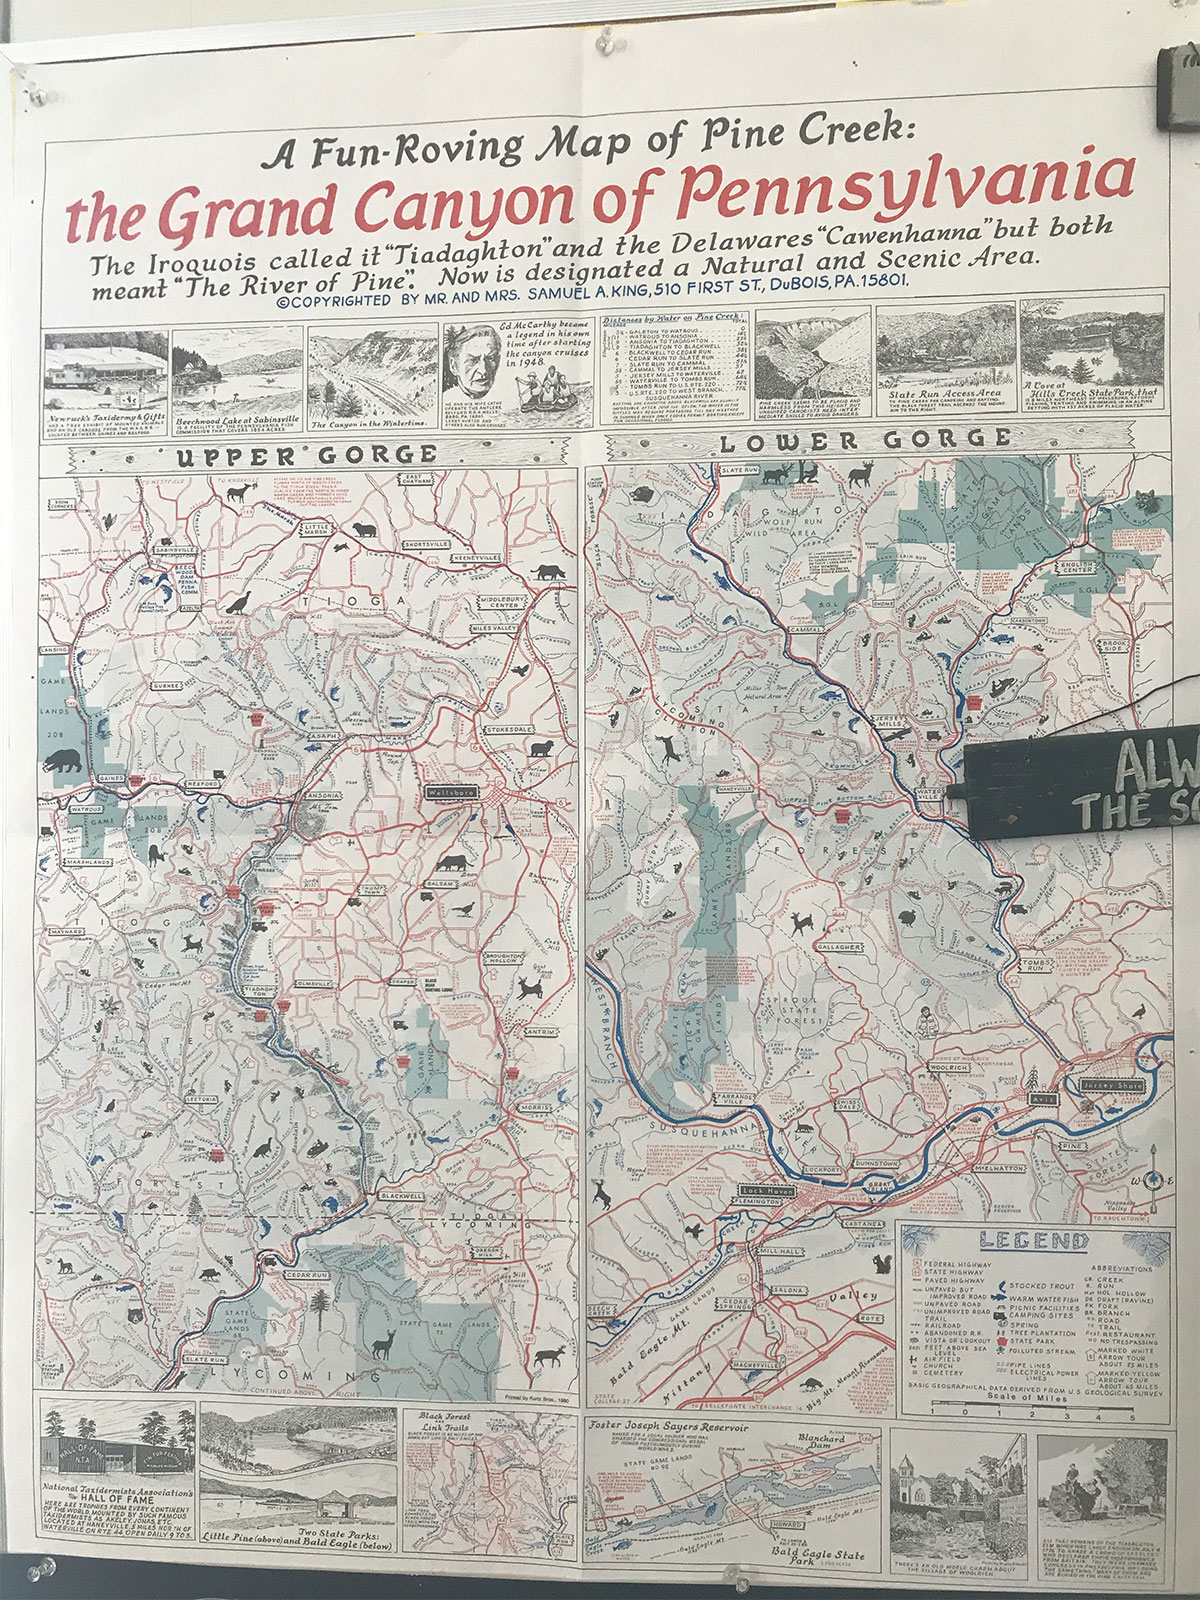 Visit Potter Tioga Historic Map PA Grand Canyon